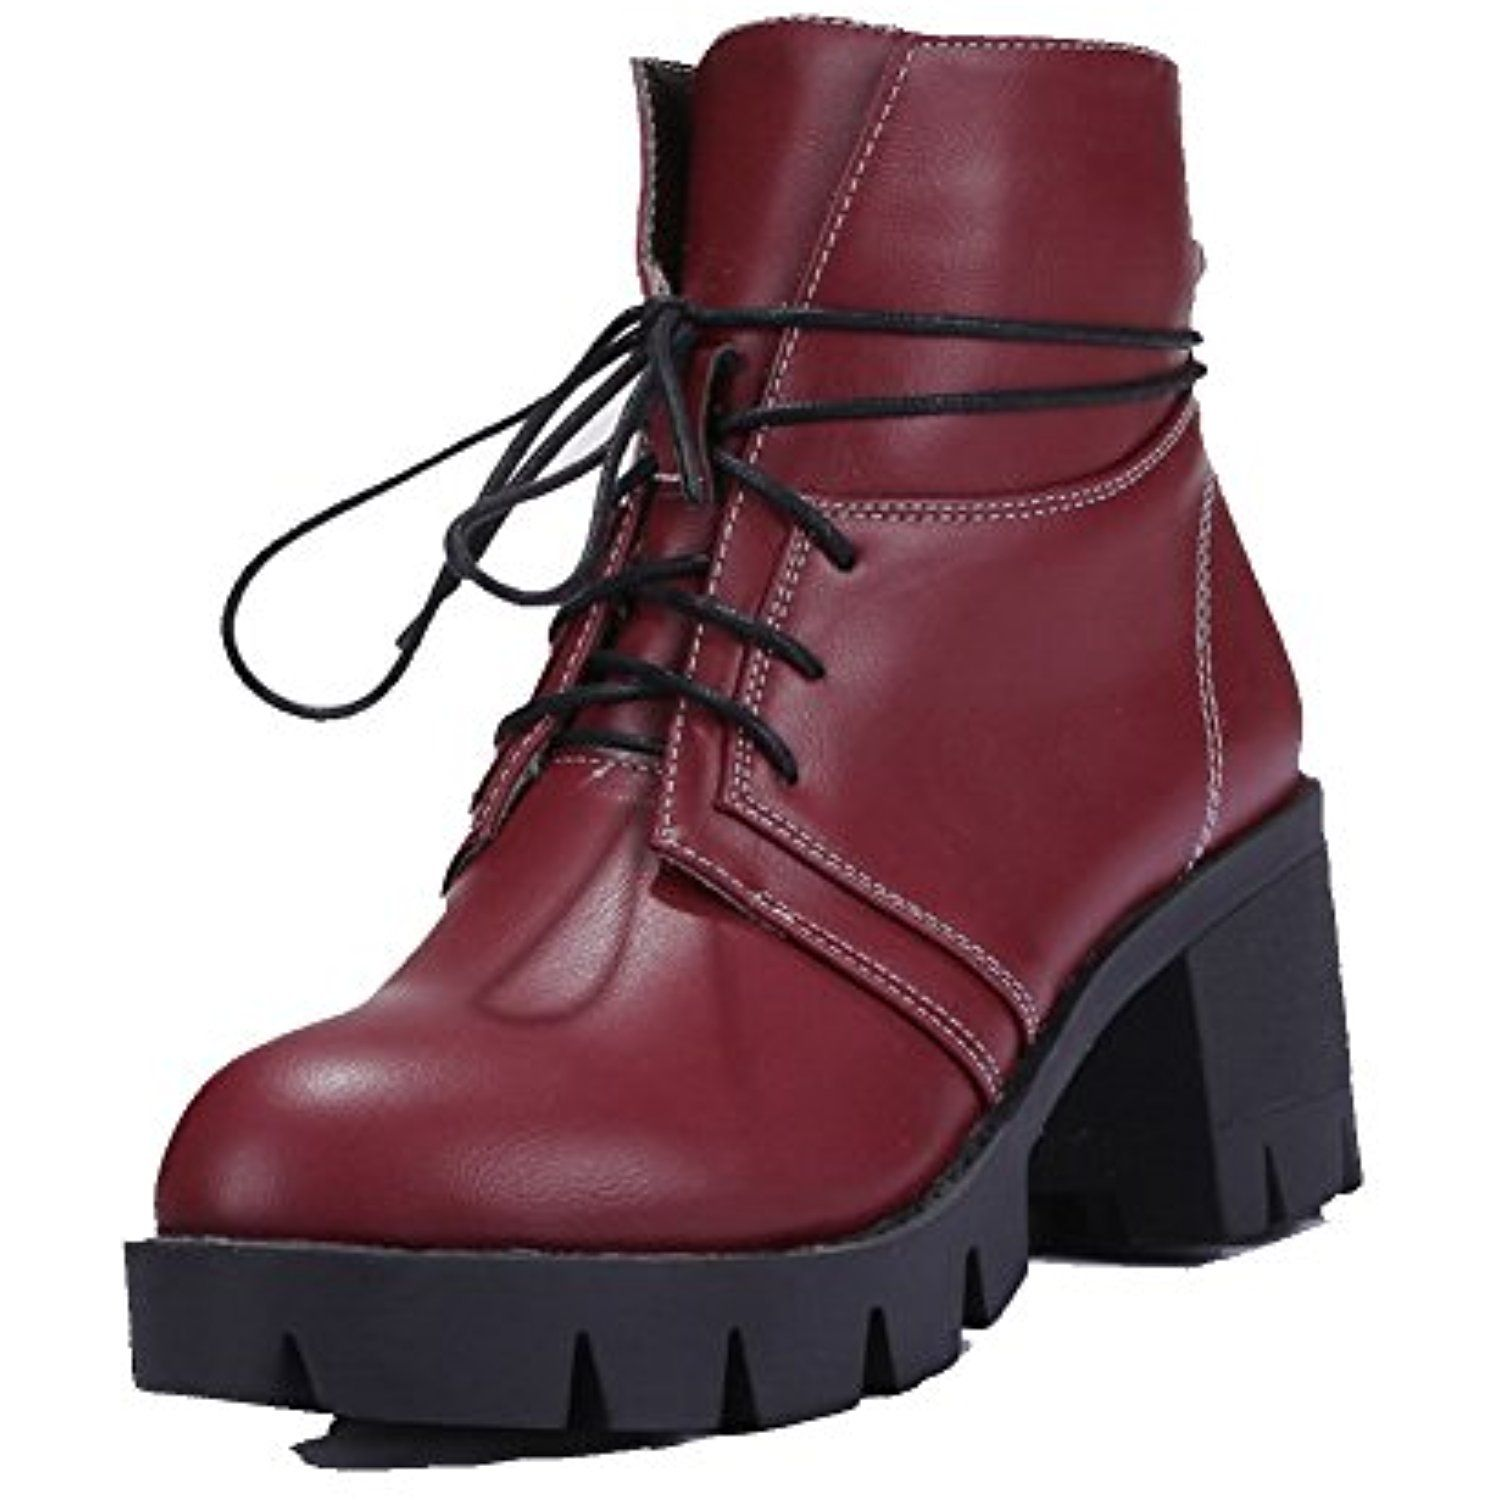 Women's Low-Top Solid Lace-up Round Closed Toe Kitten-Heels Boots